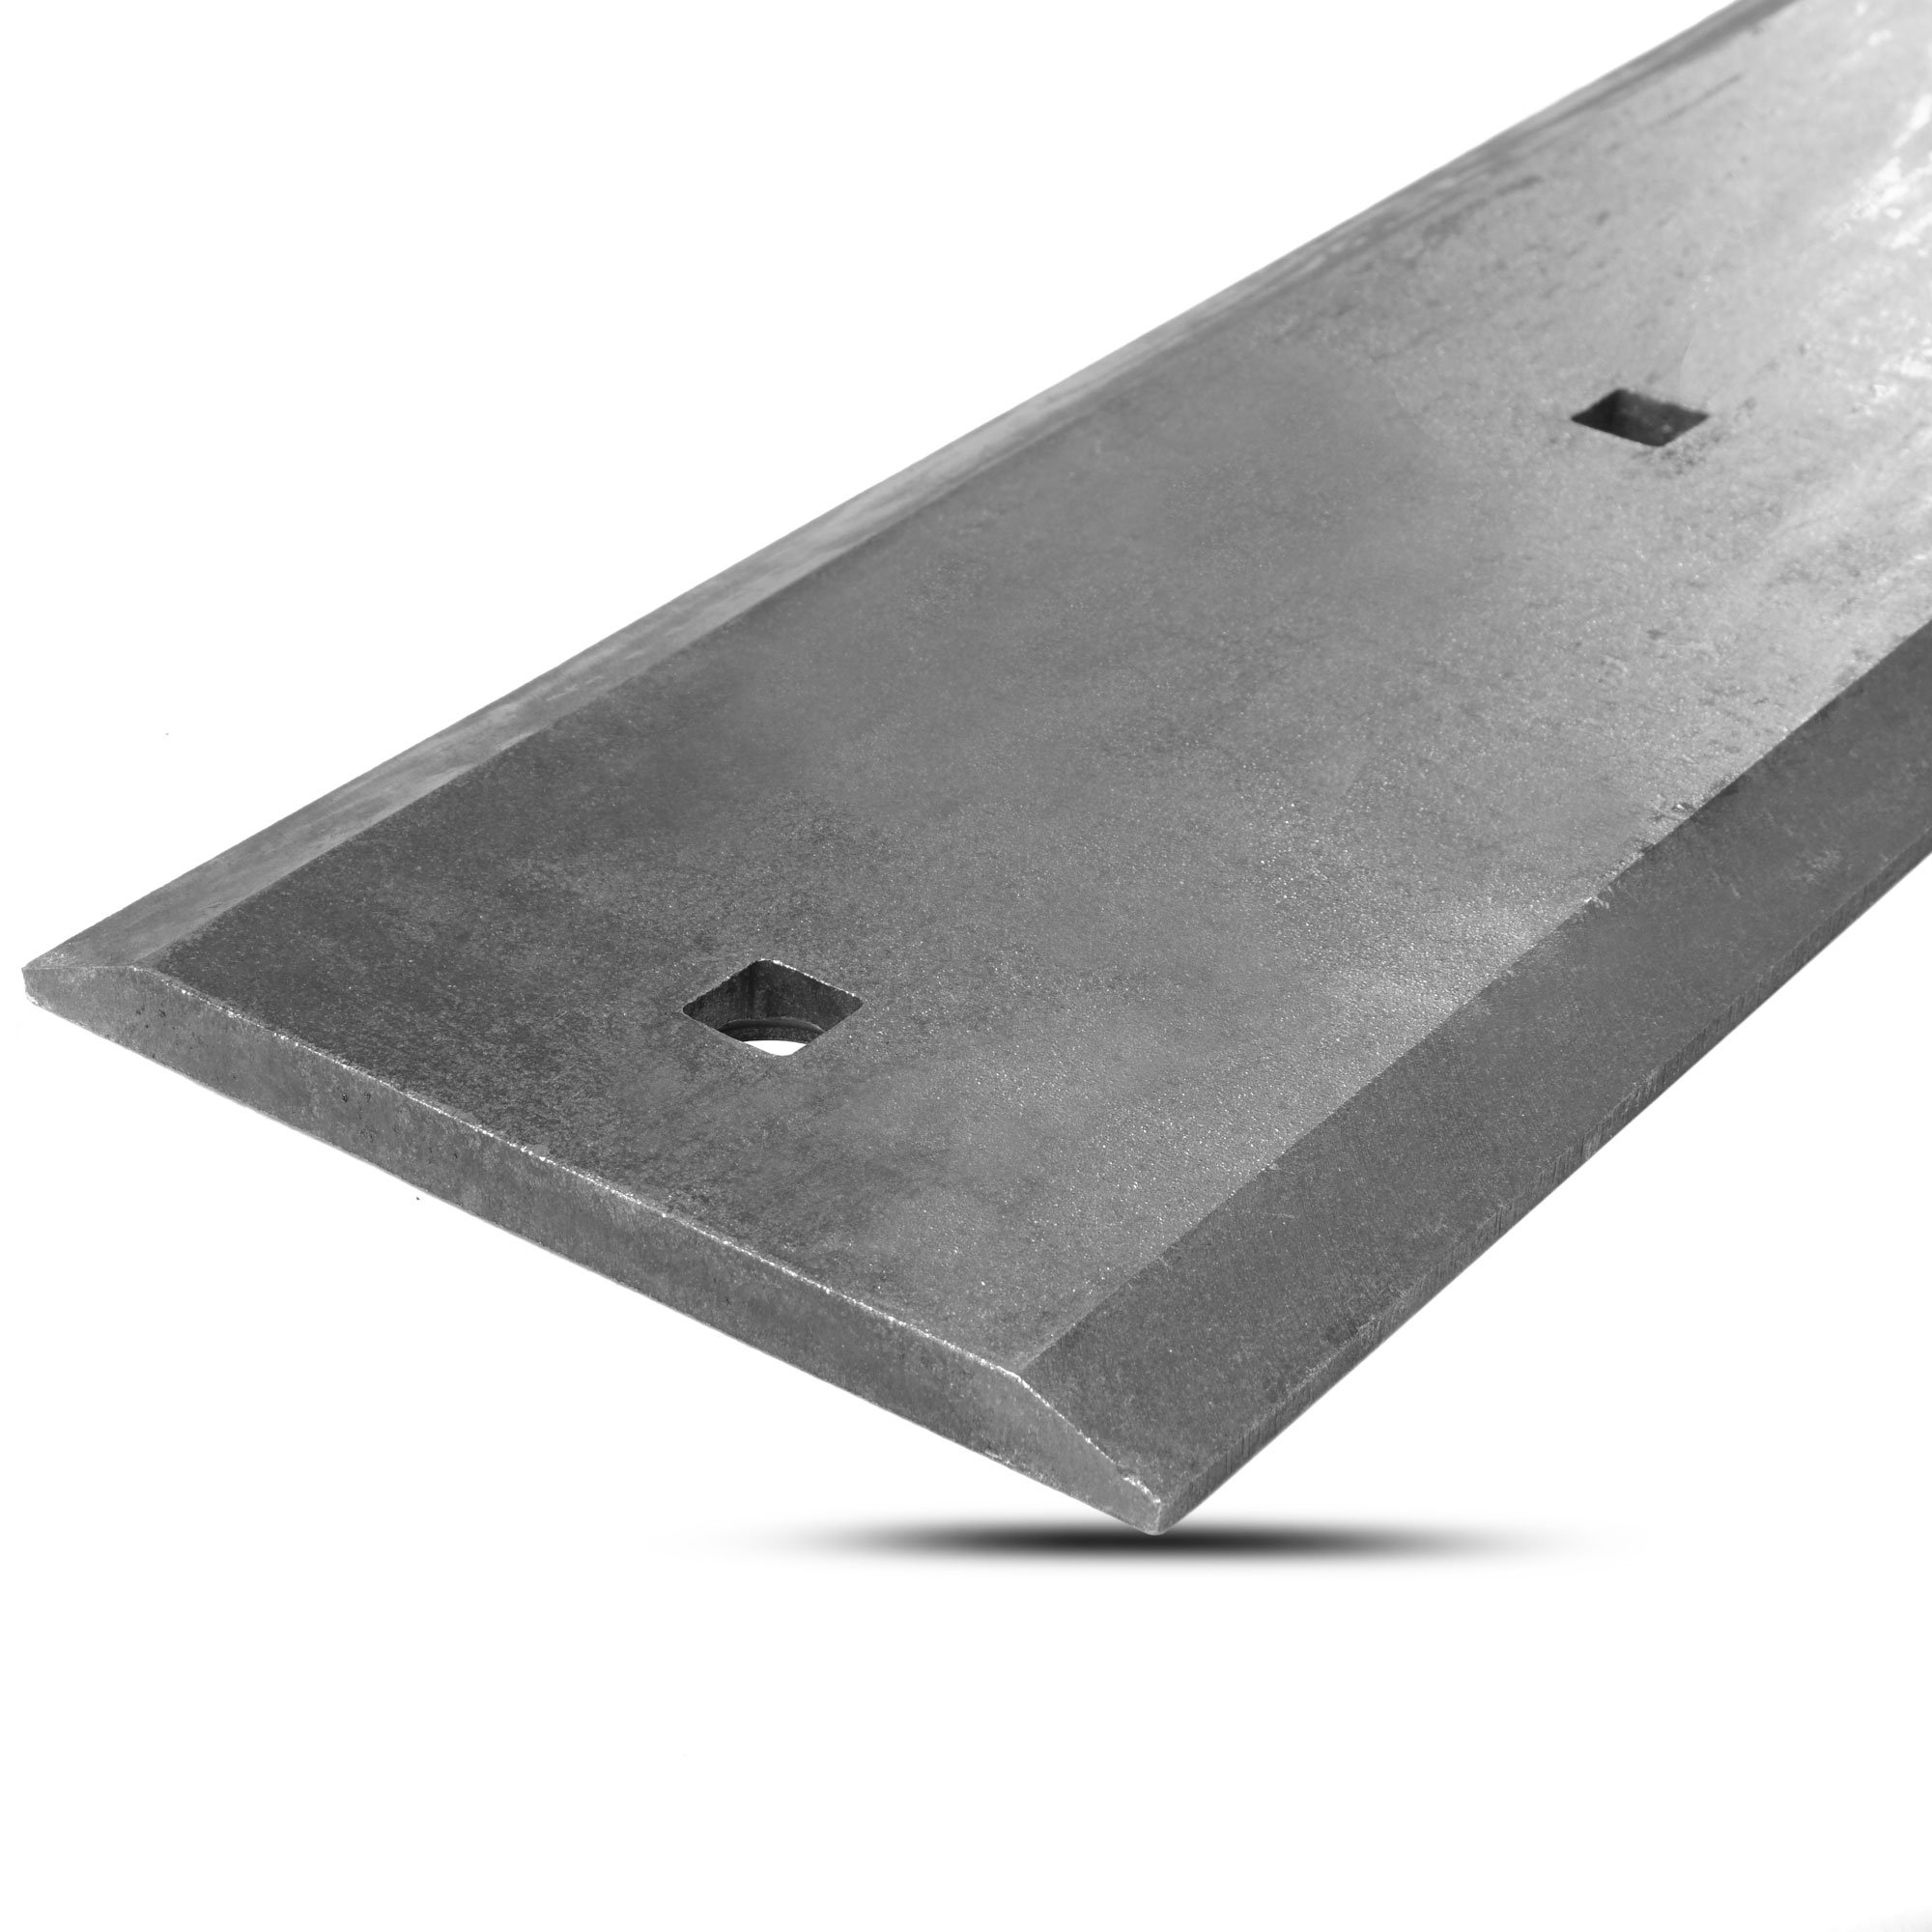 Titan 74'' Reversible Bucket Double Cutting Edge Hardened 1055 Carbon Steel 5/8'' Skidsteer Tractor Loader Blade Scraper by Titan Attachments